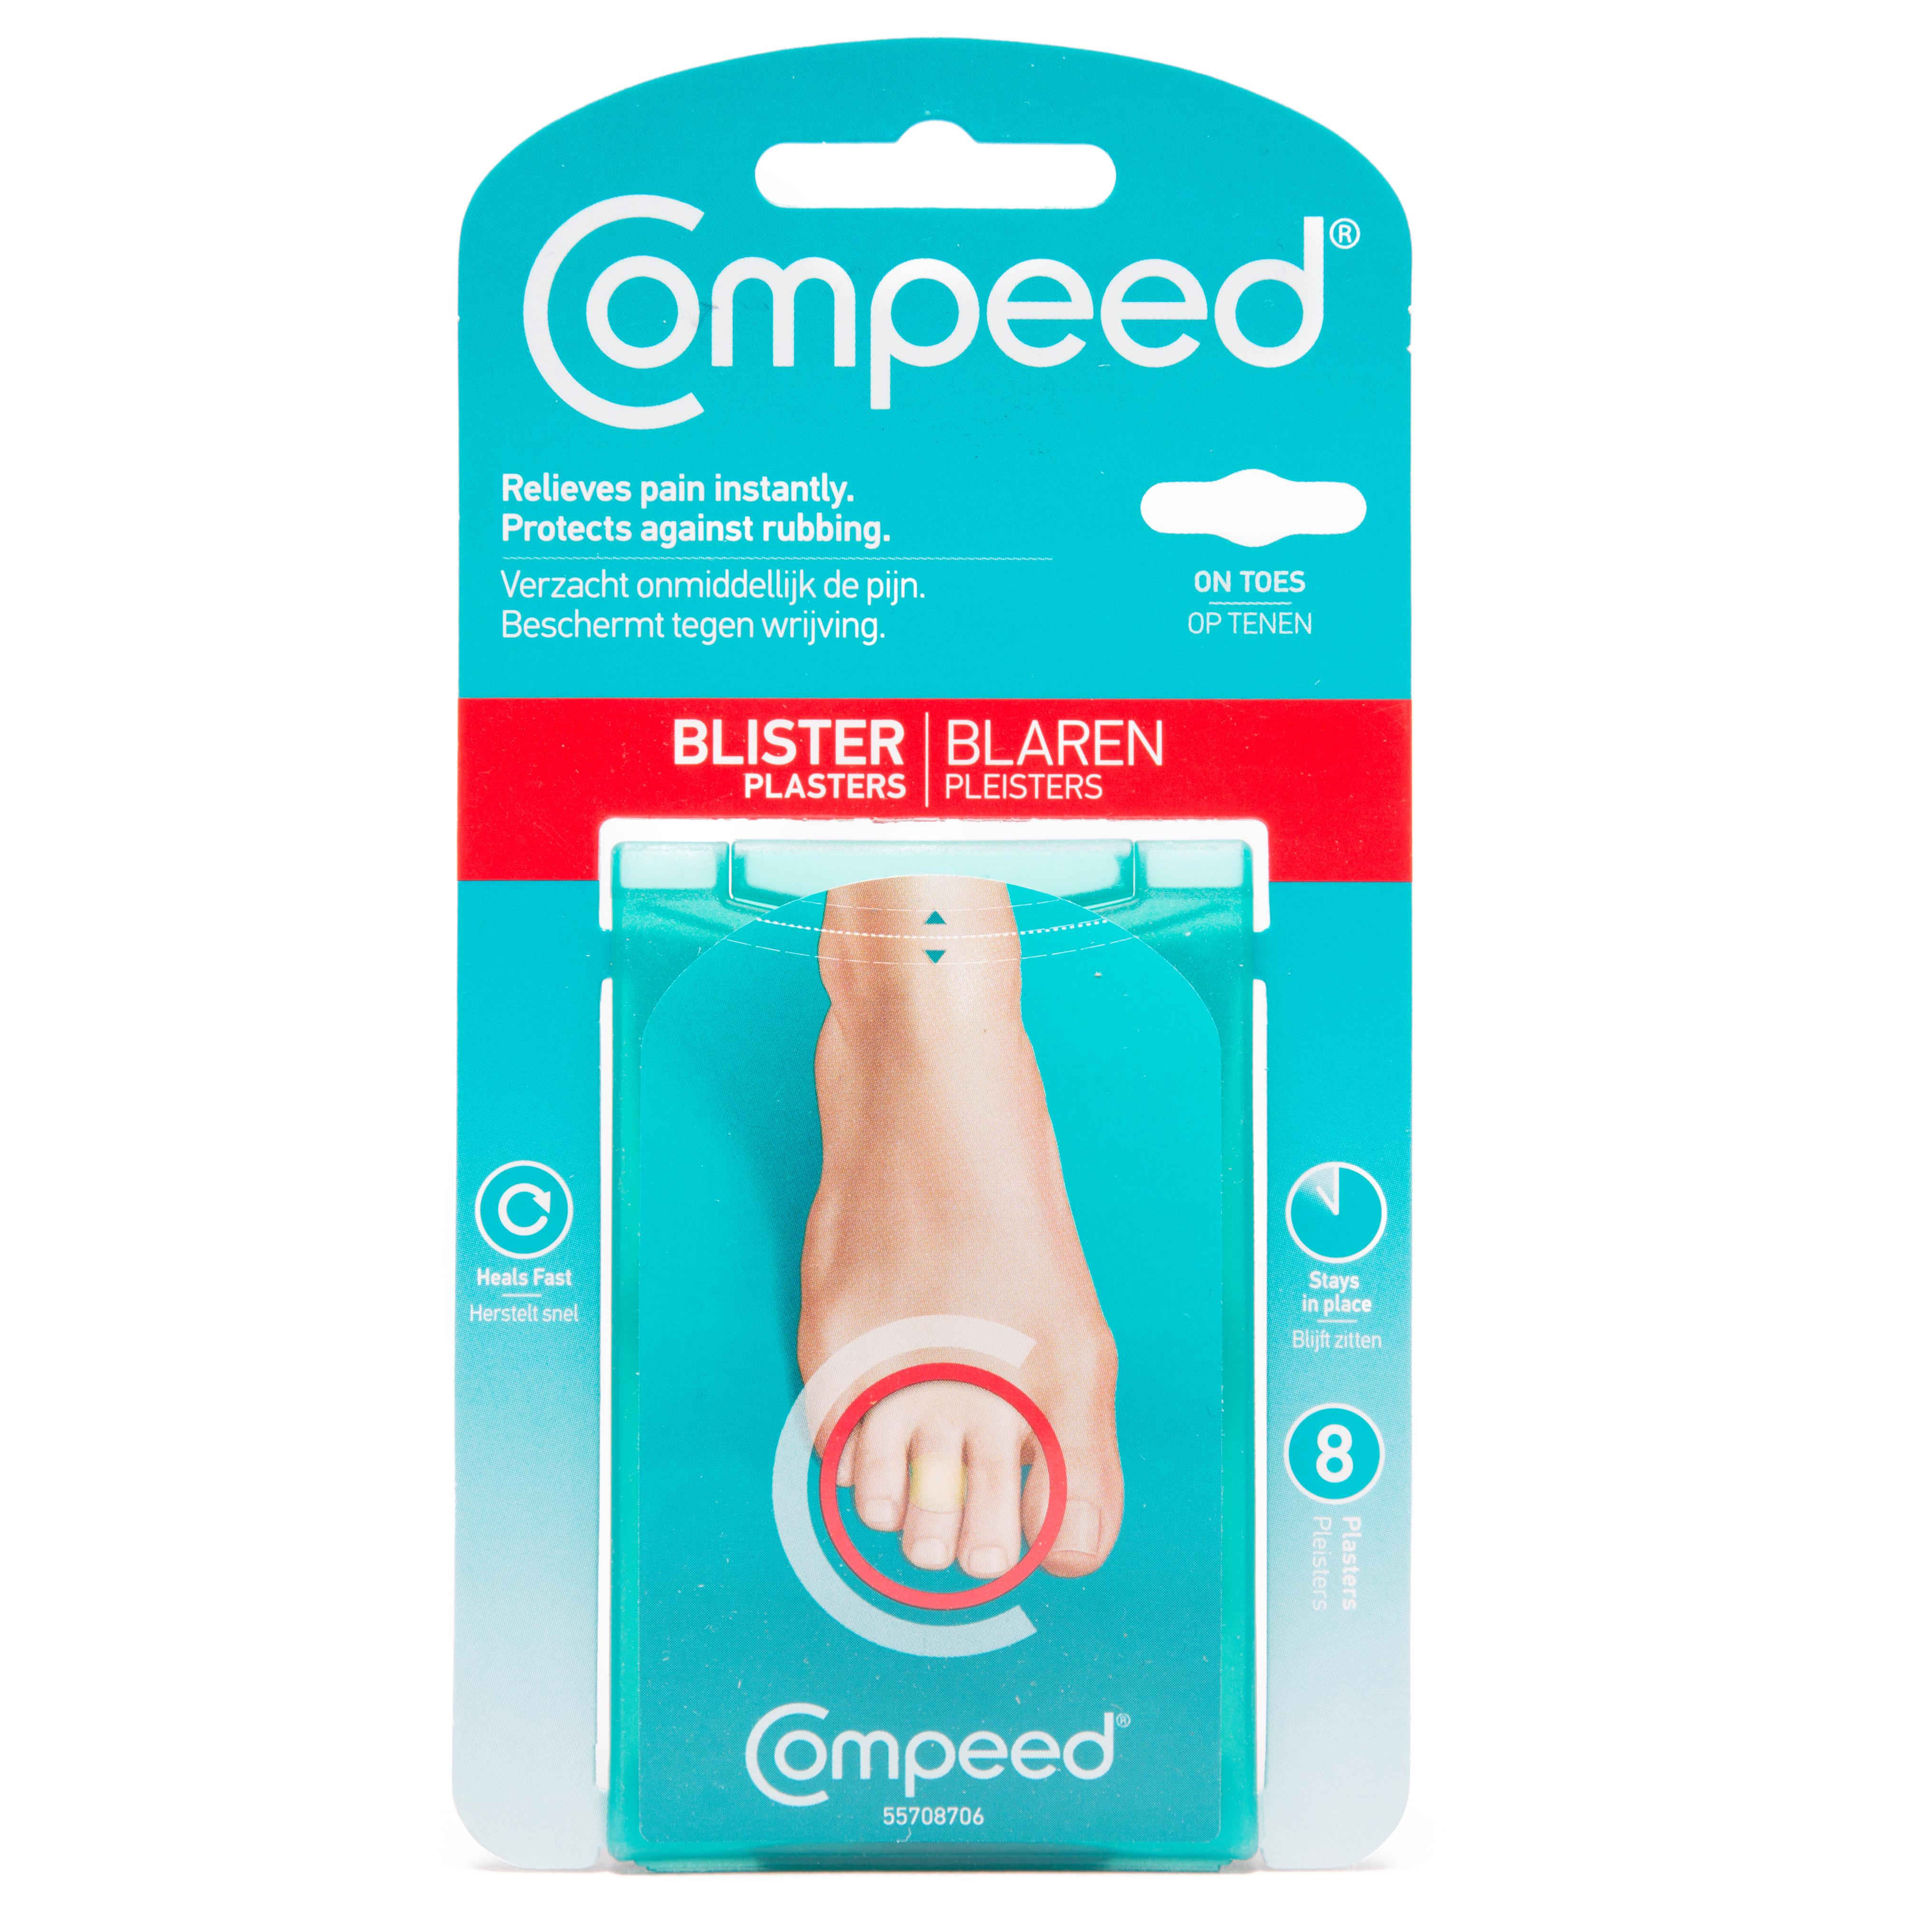 Compeed Compeed Blisters On Toes Plasters - N/A, N/A